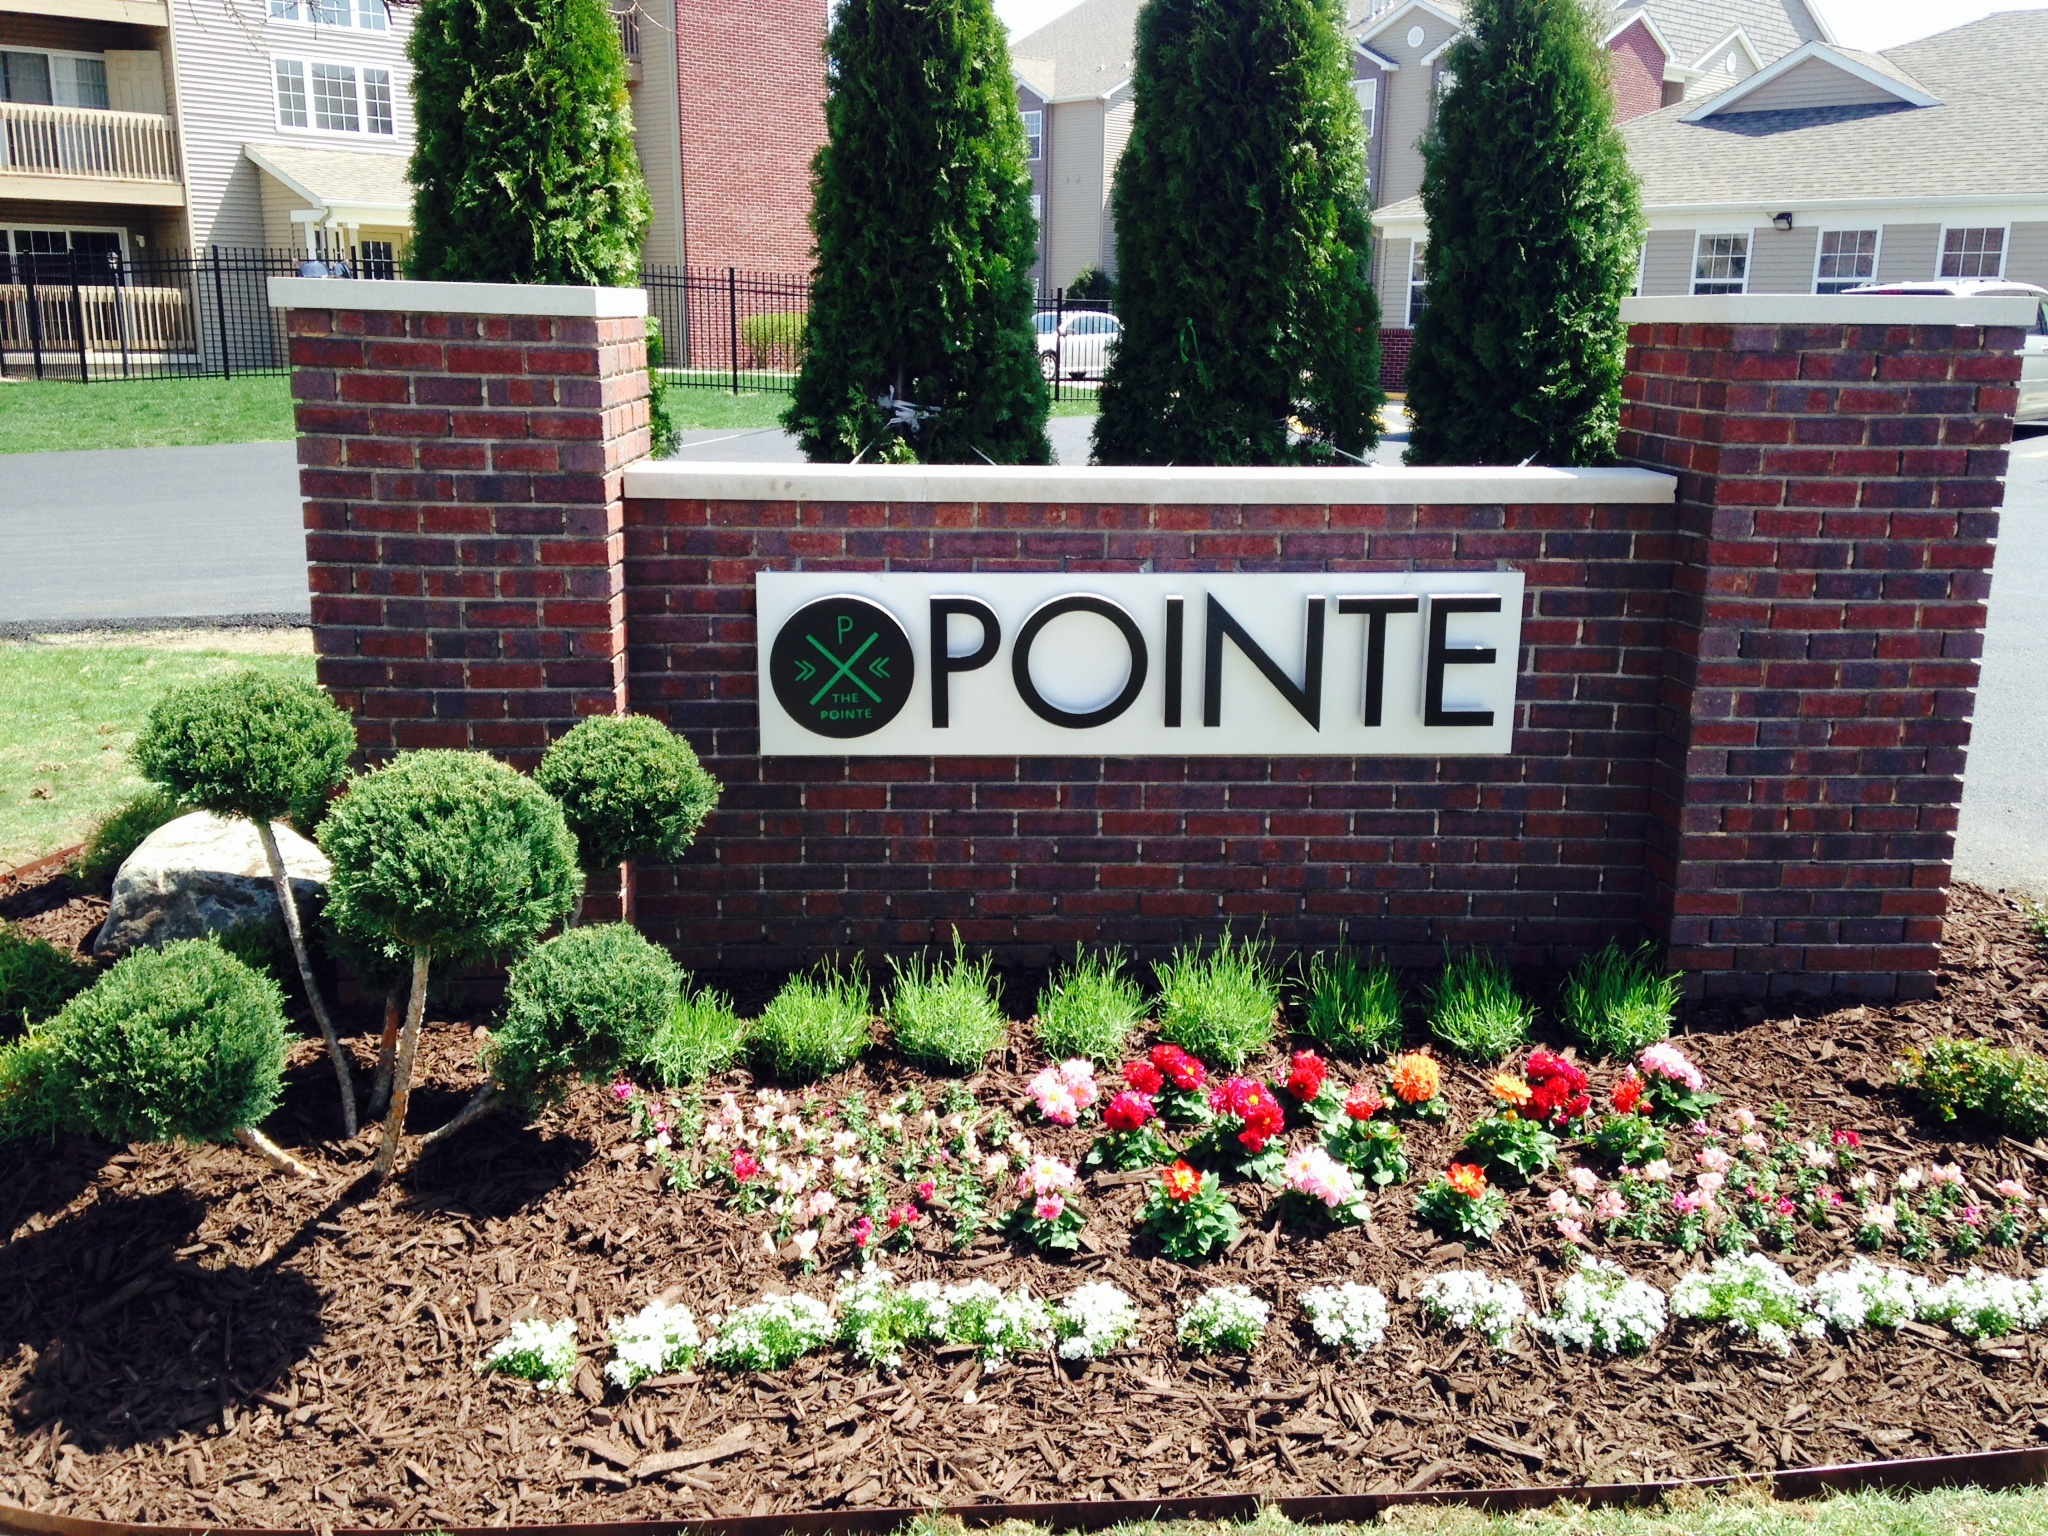 The Pointe Love Their New Monument Signs